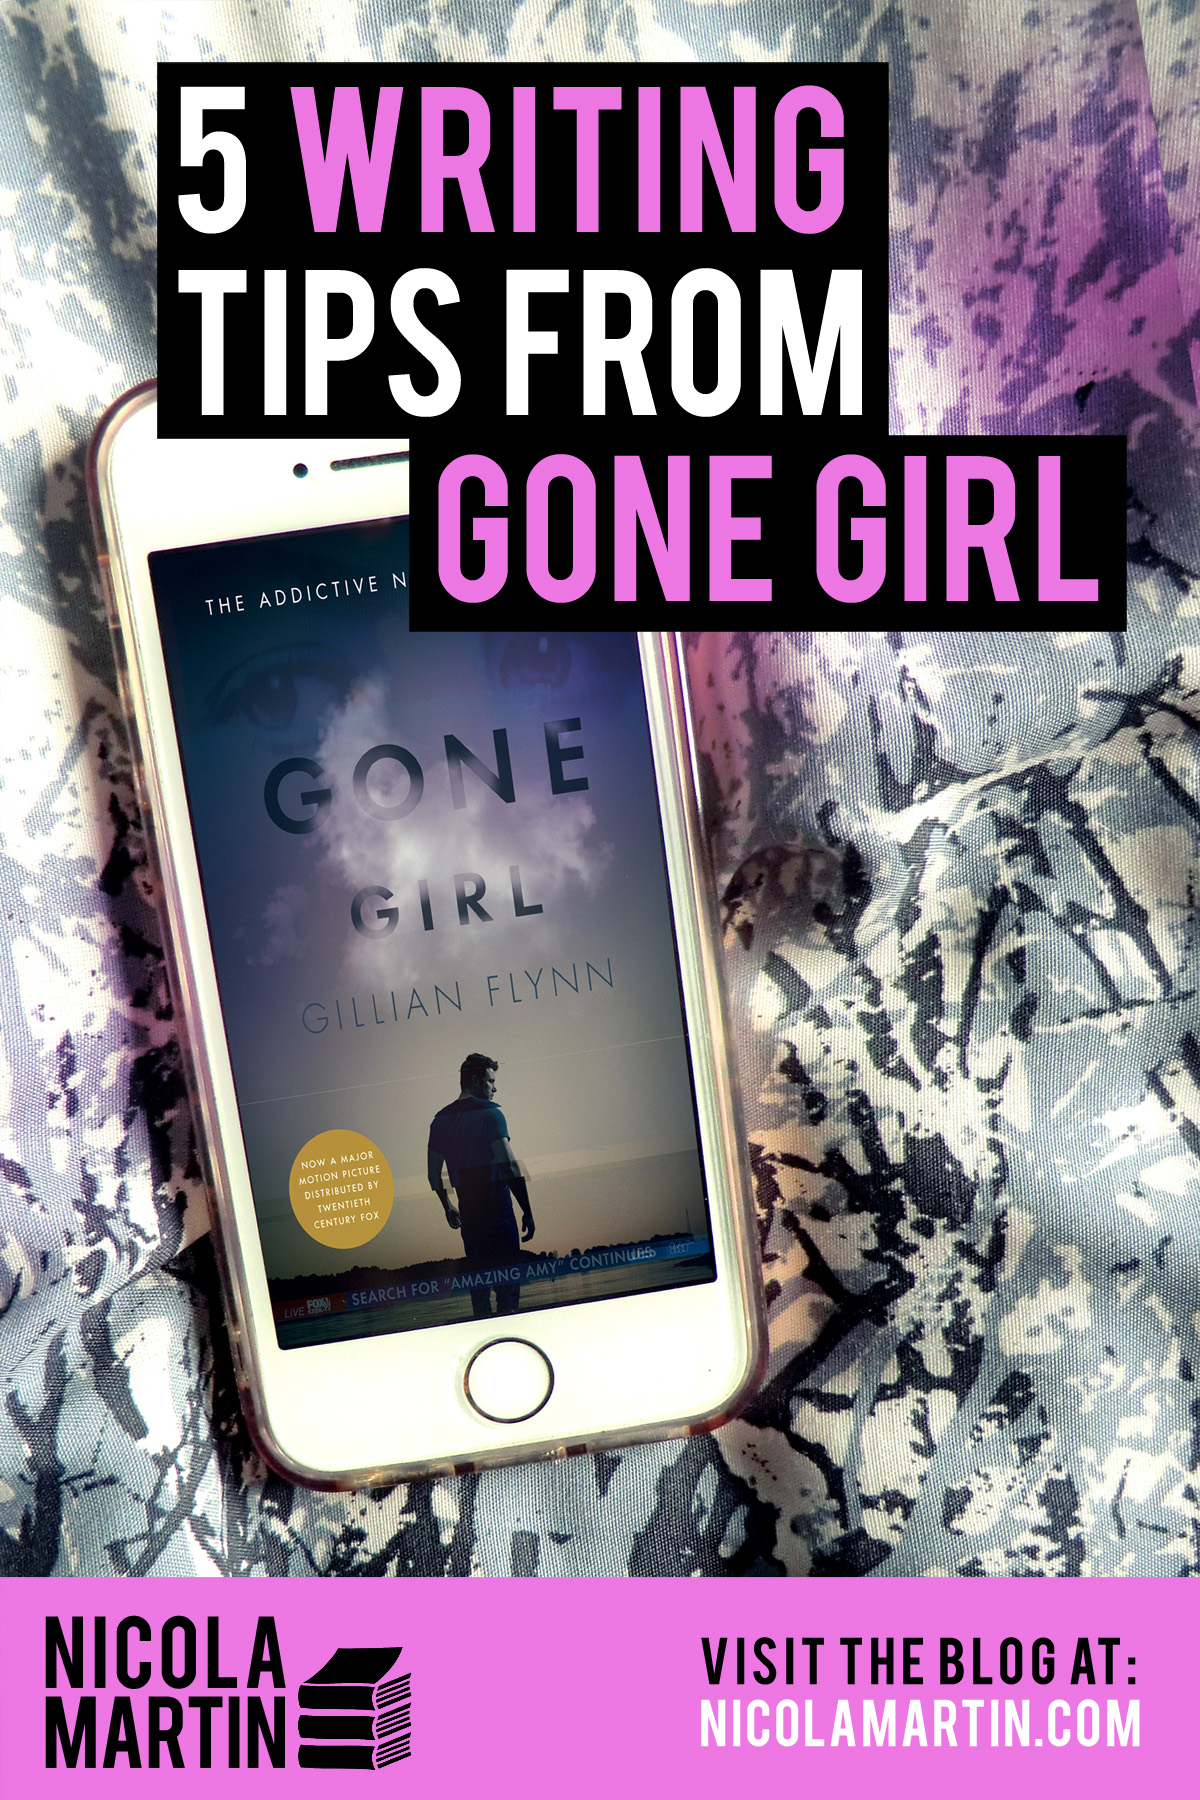 5 writing tips from Gone Girl by Gillian Flynn